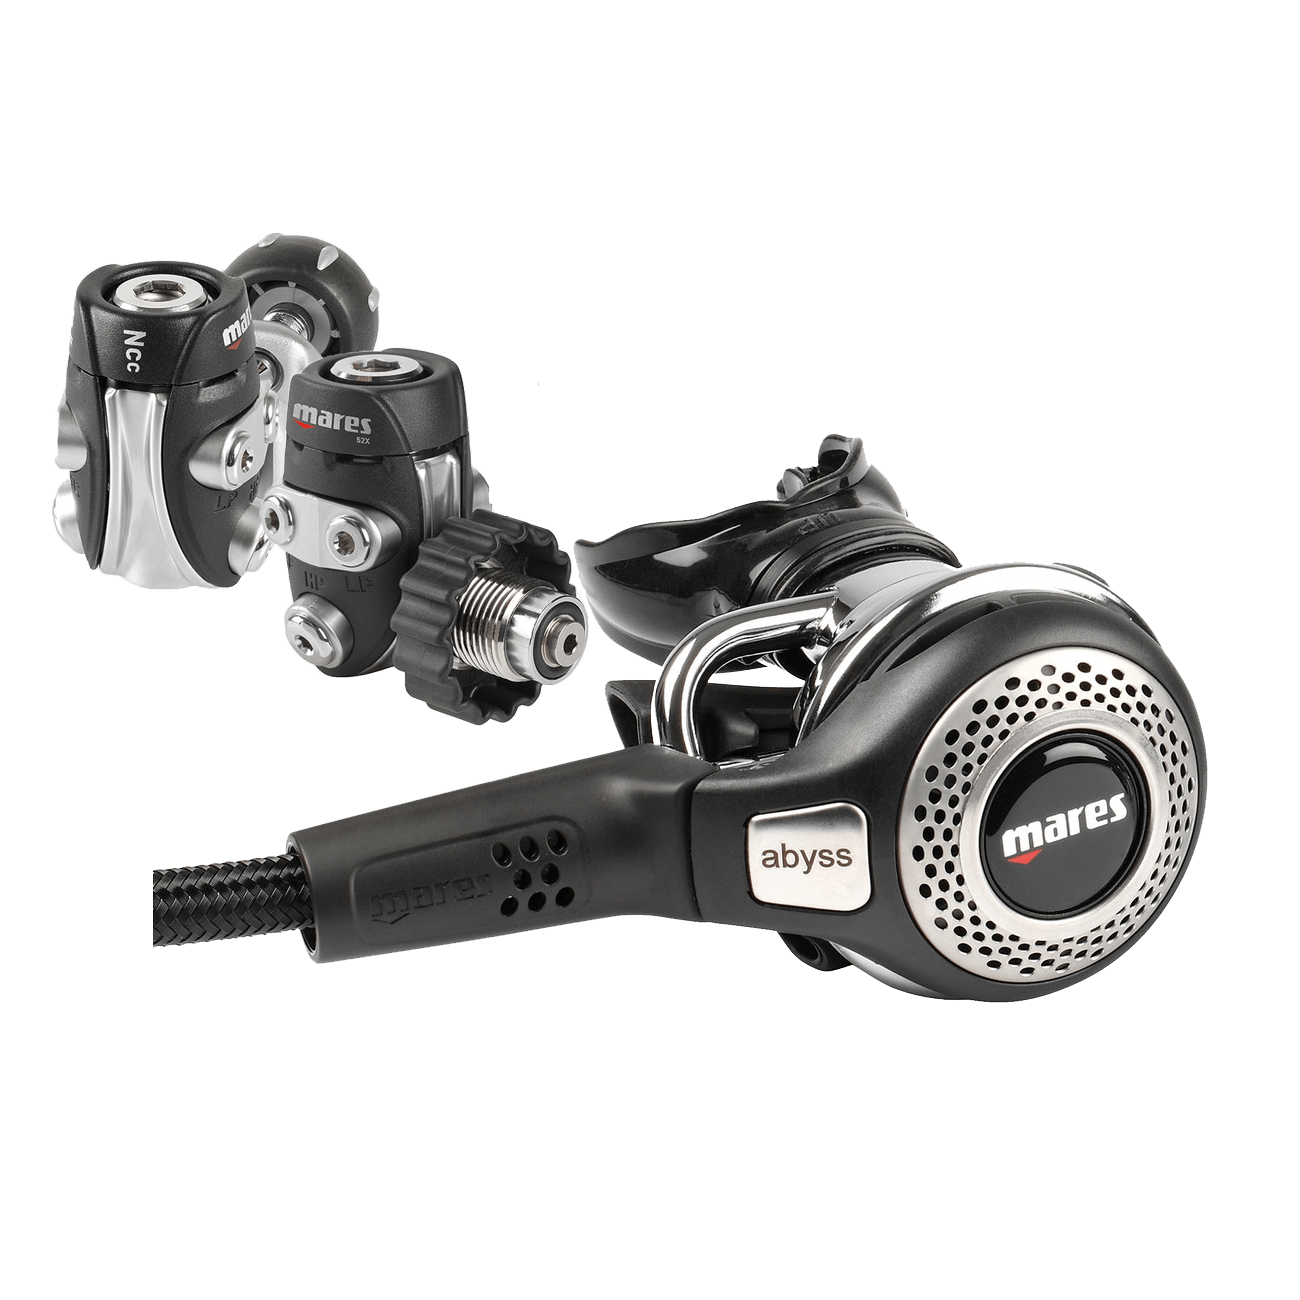 Mares Abyss 52x Regulator | Mares Regulator | Mares Singapore